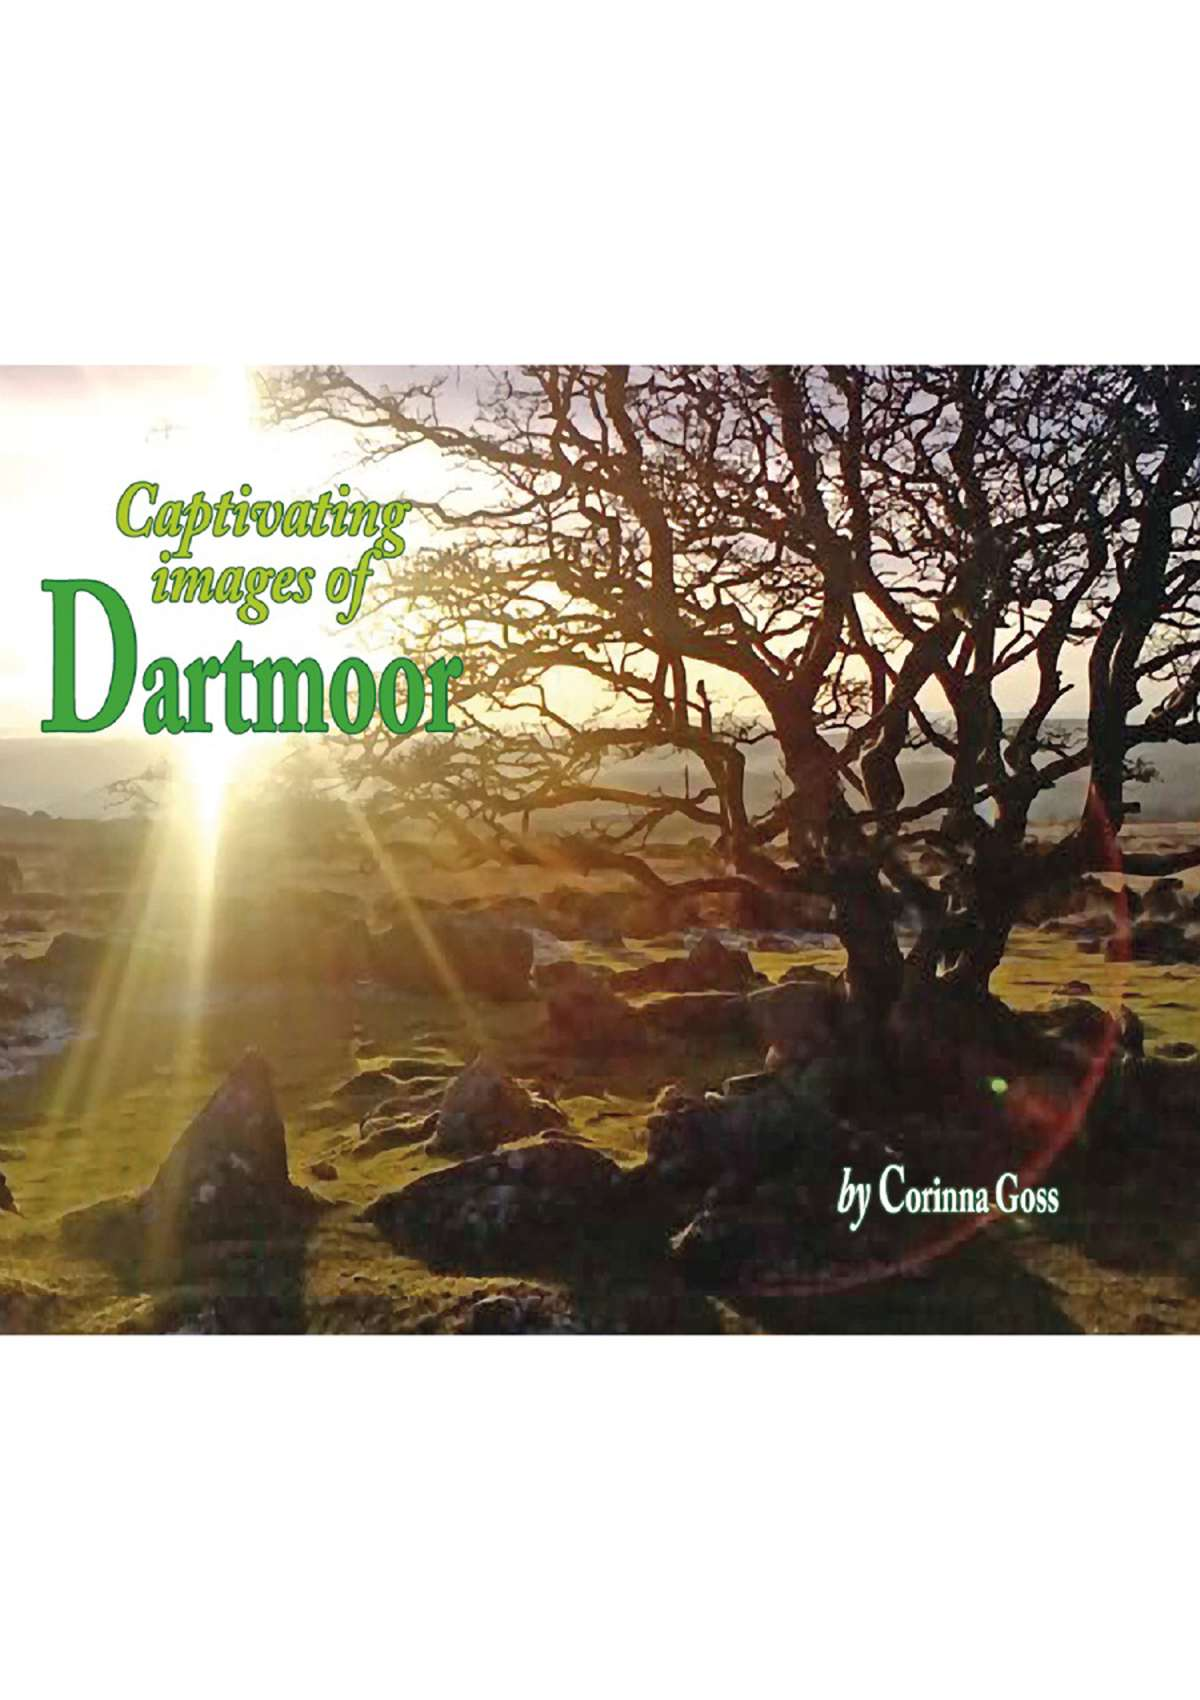 4242 - Captivating Images of Dartmoor